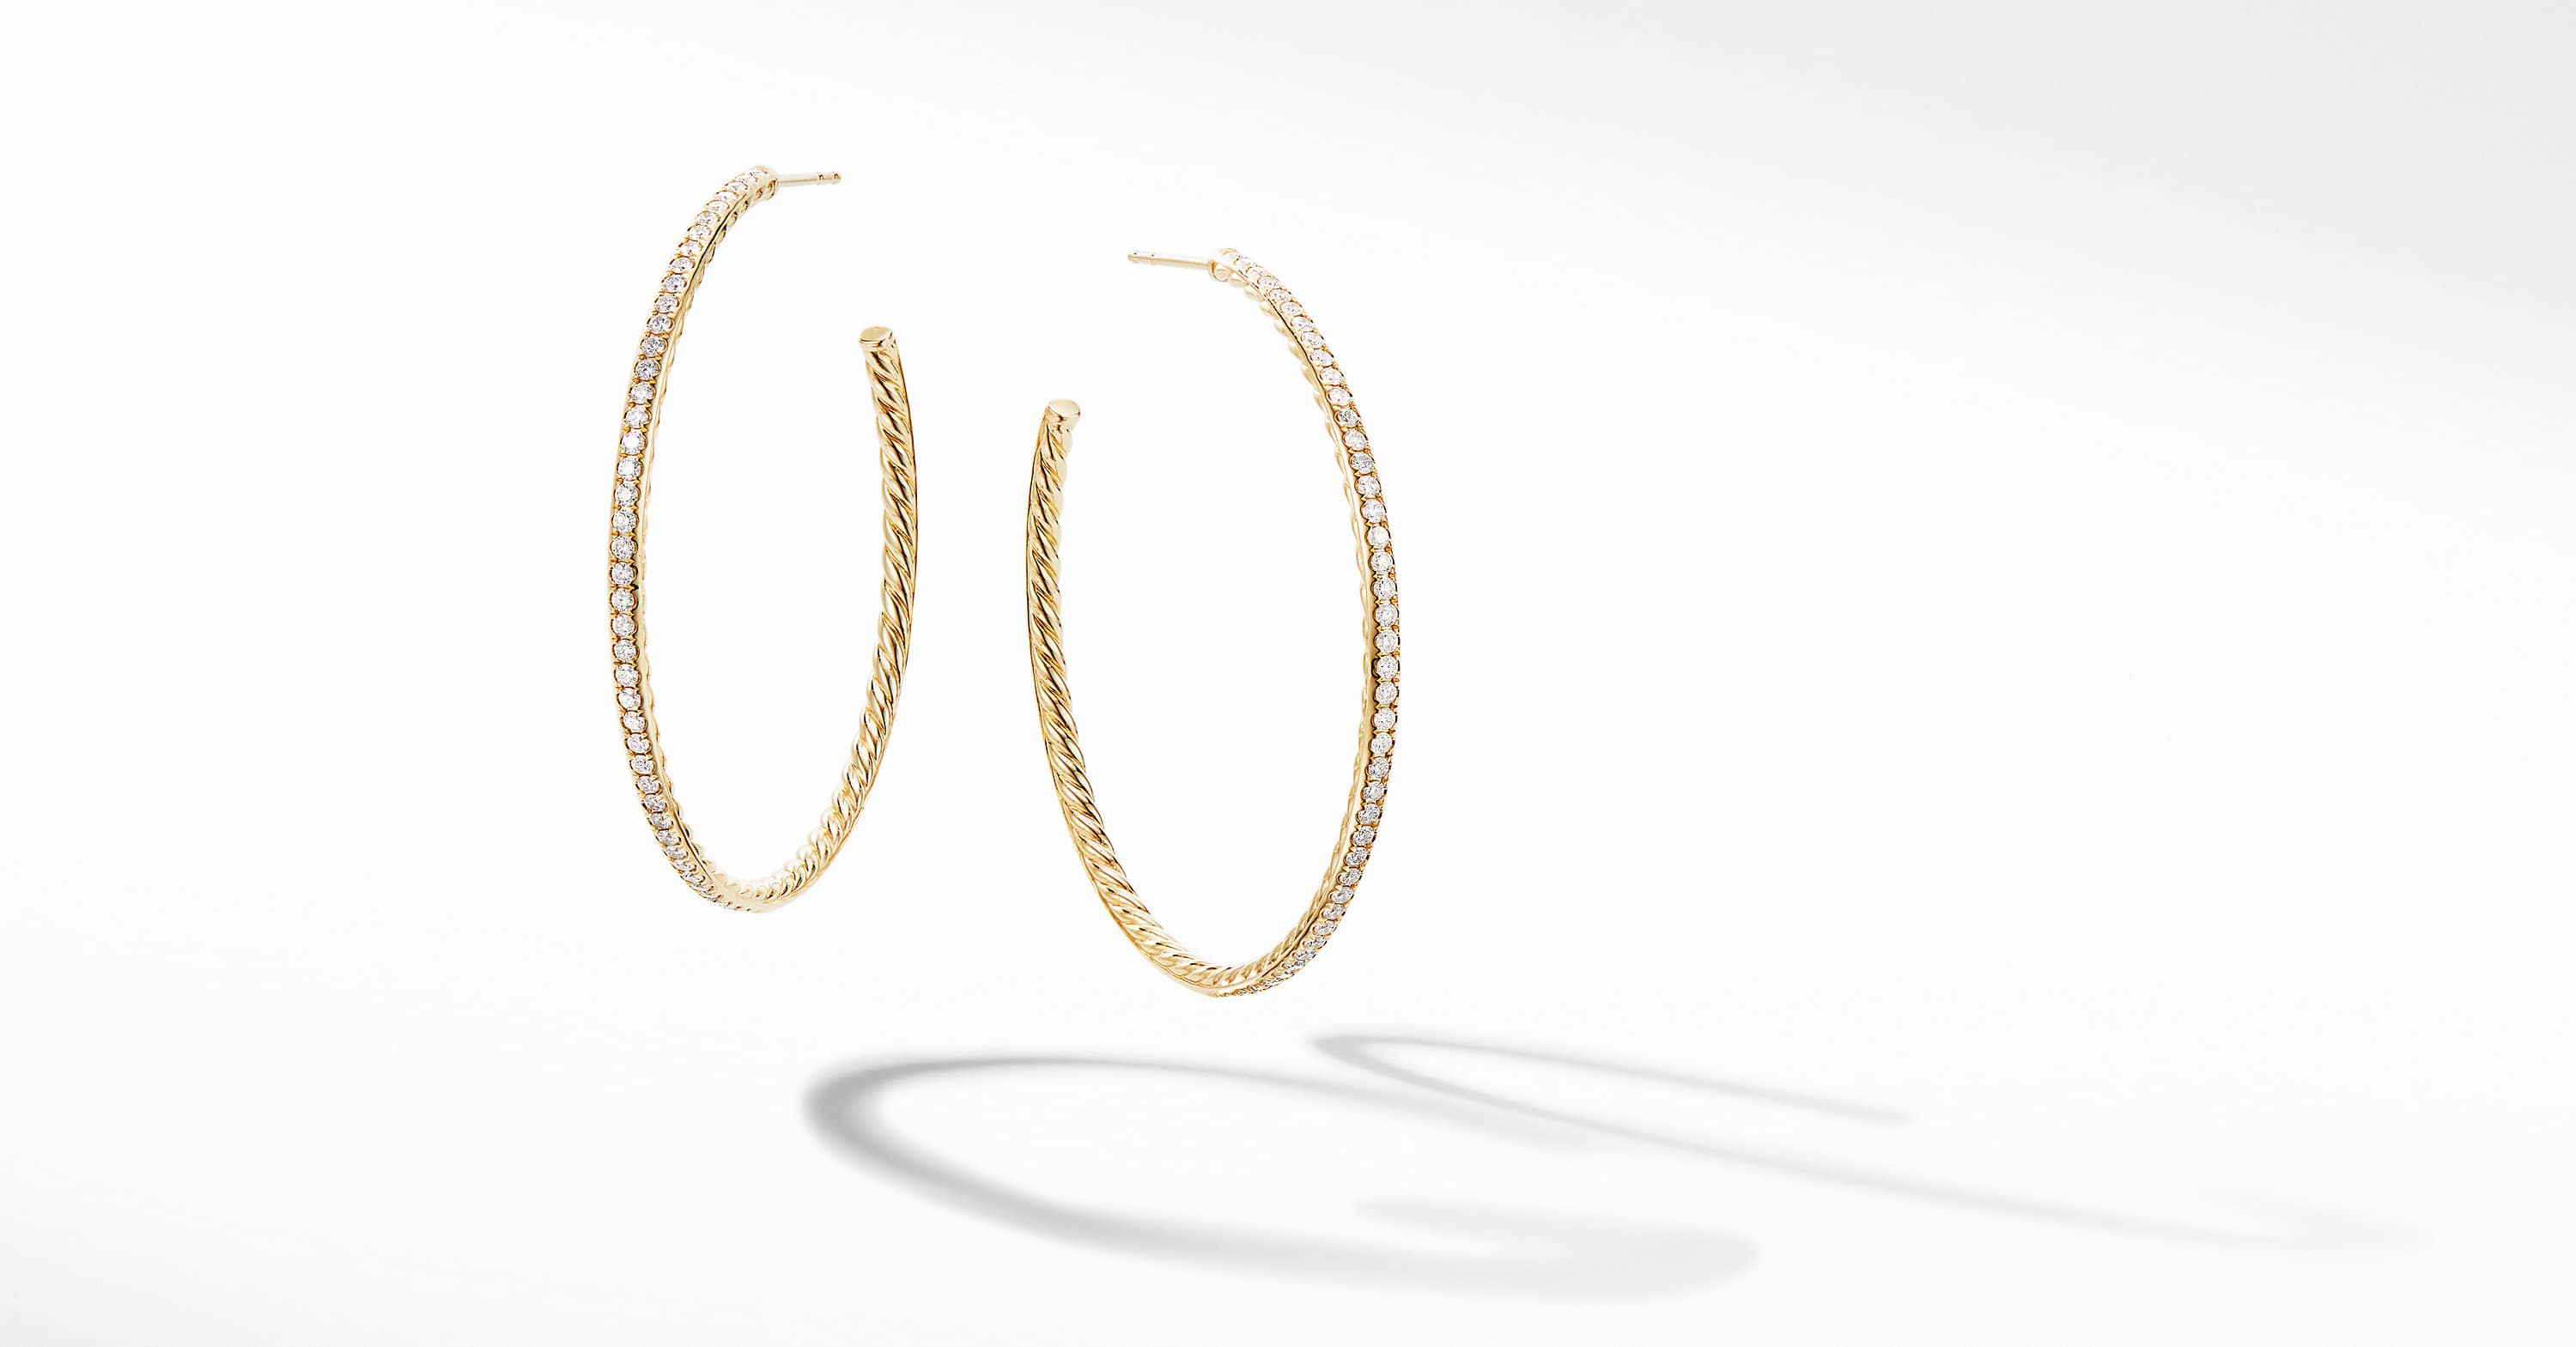 Large Hoop Earrings in 18K Yellow Gold with Pavé